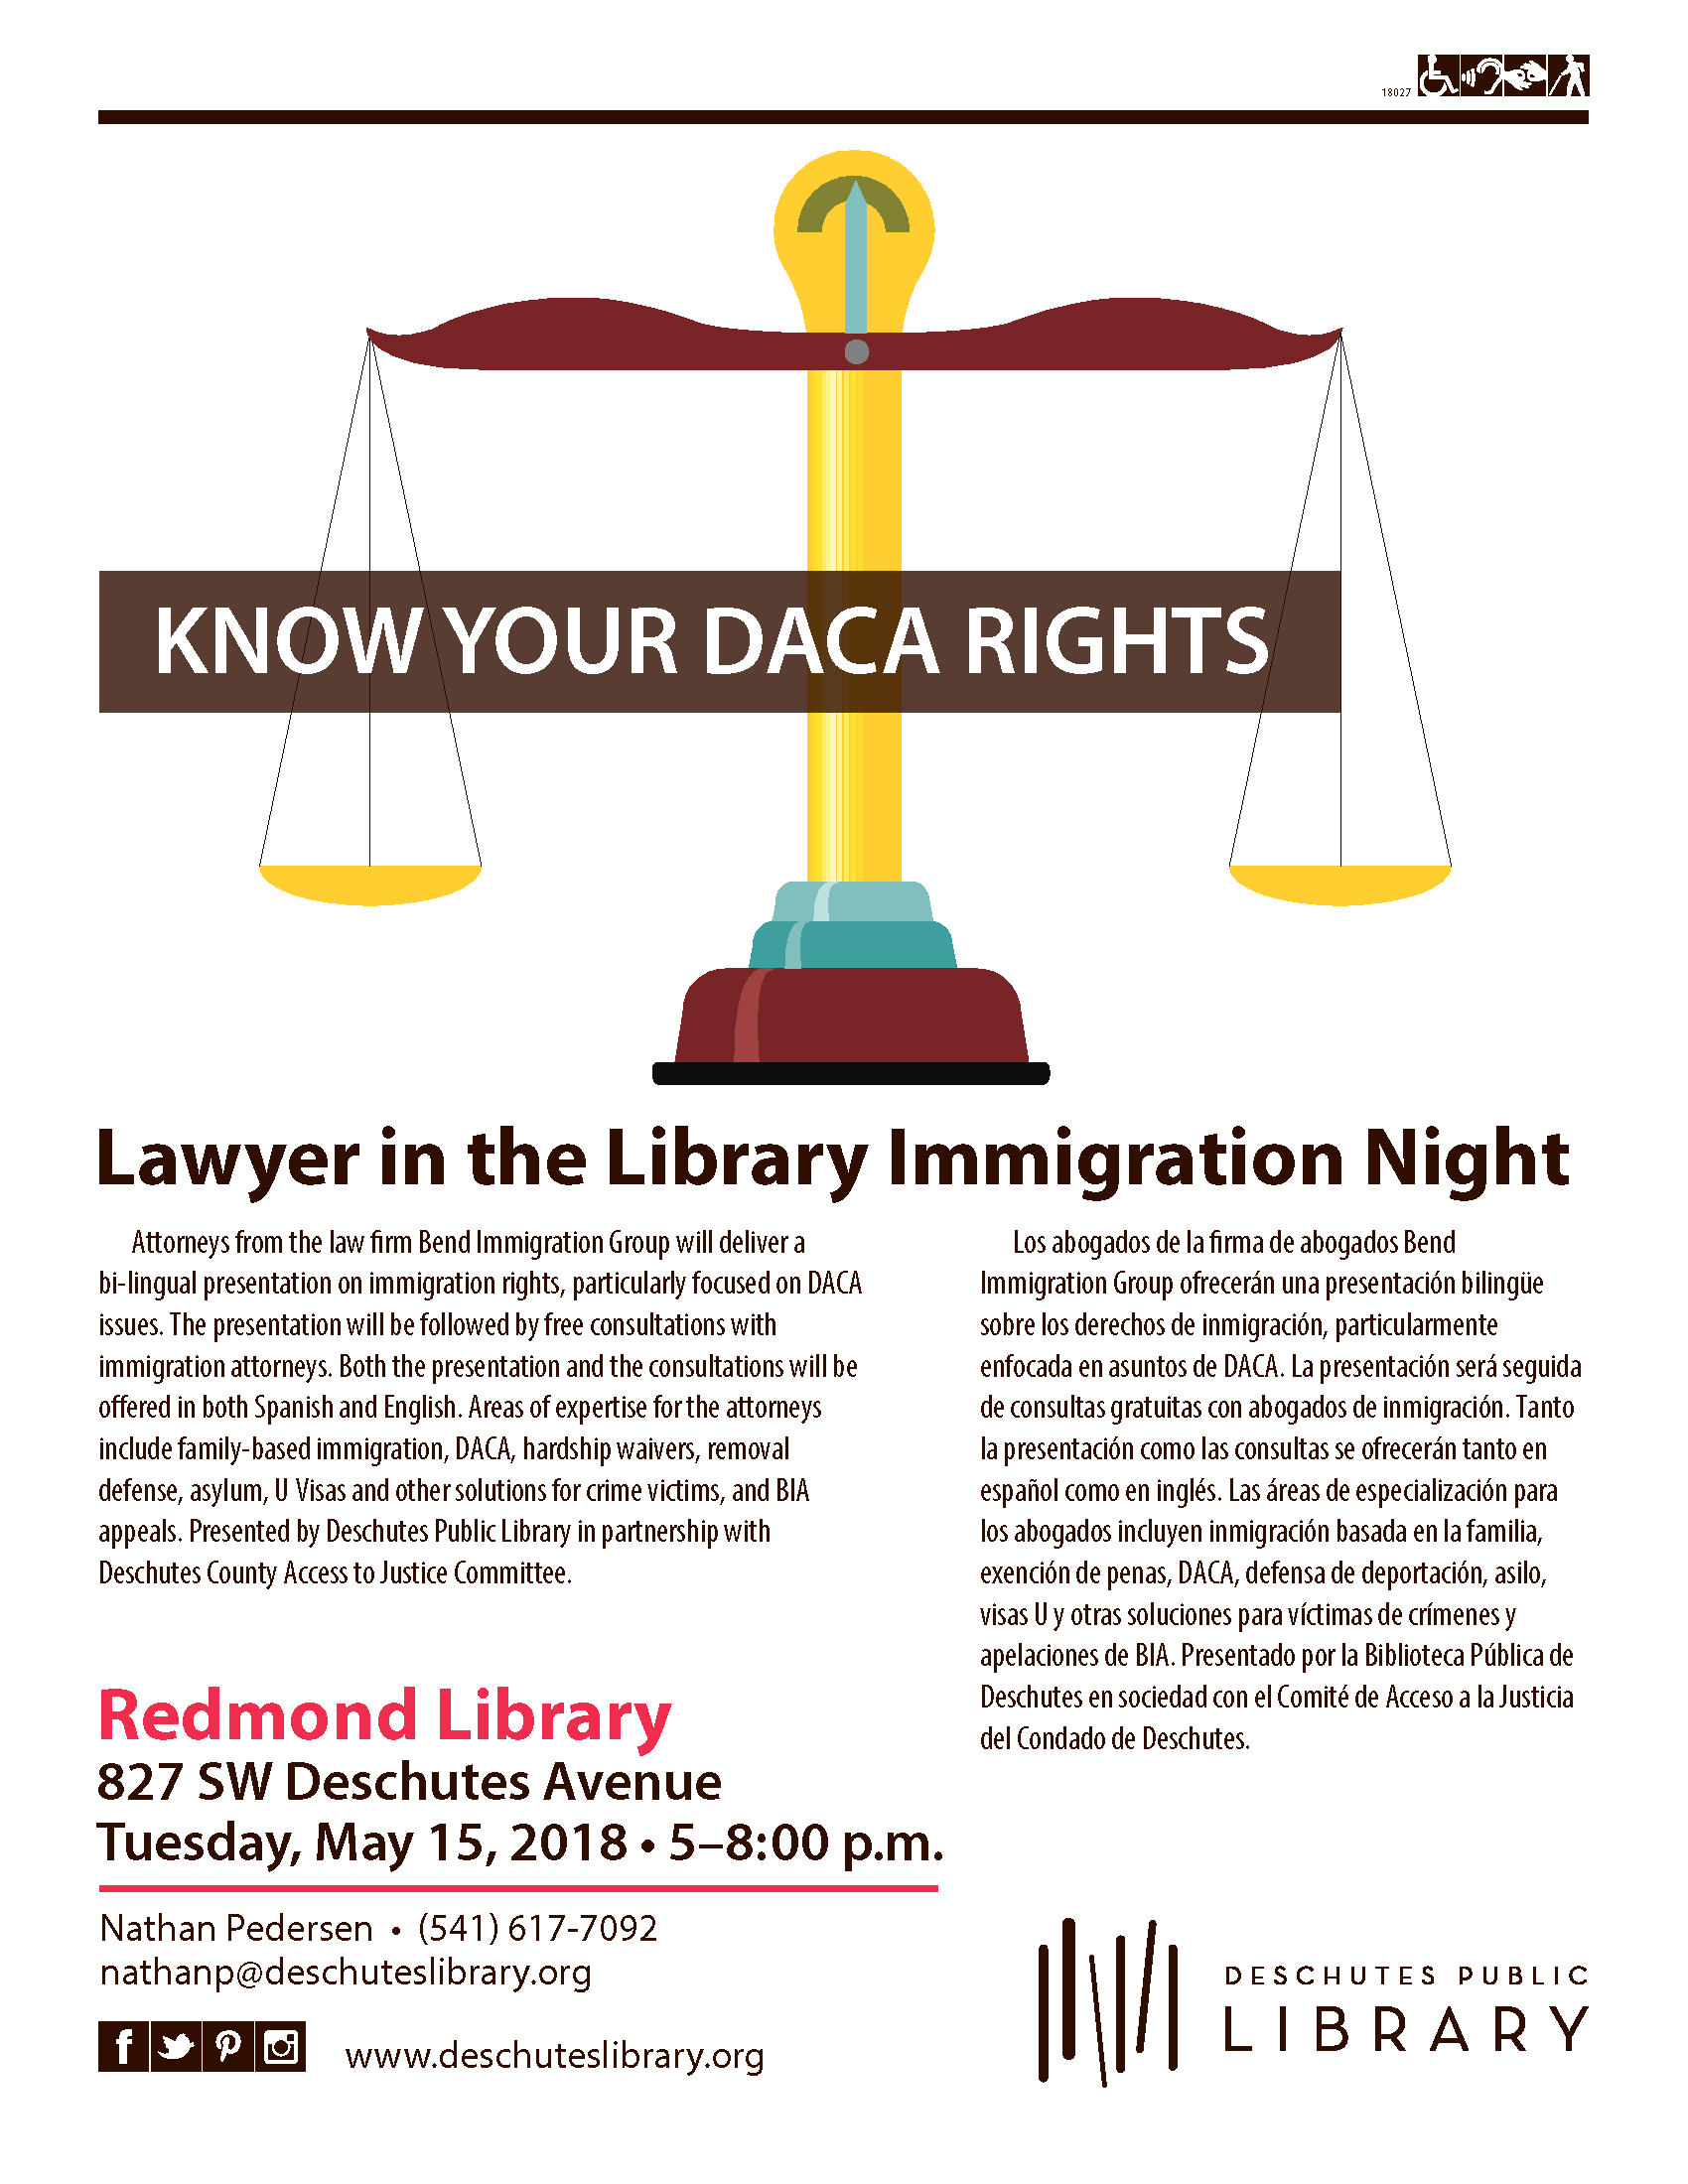 Know your DACA Rights: Lawyer in the Library Immigration Night in Redmond